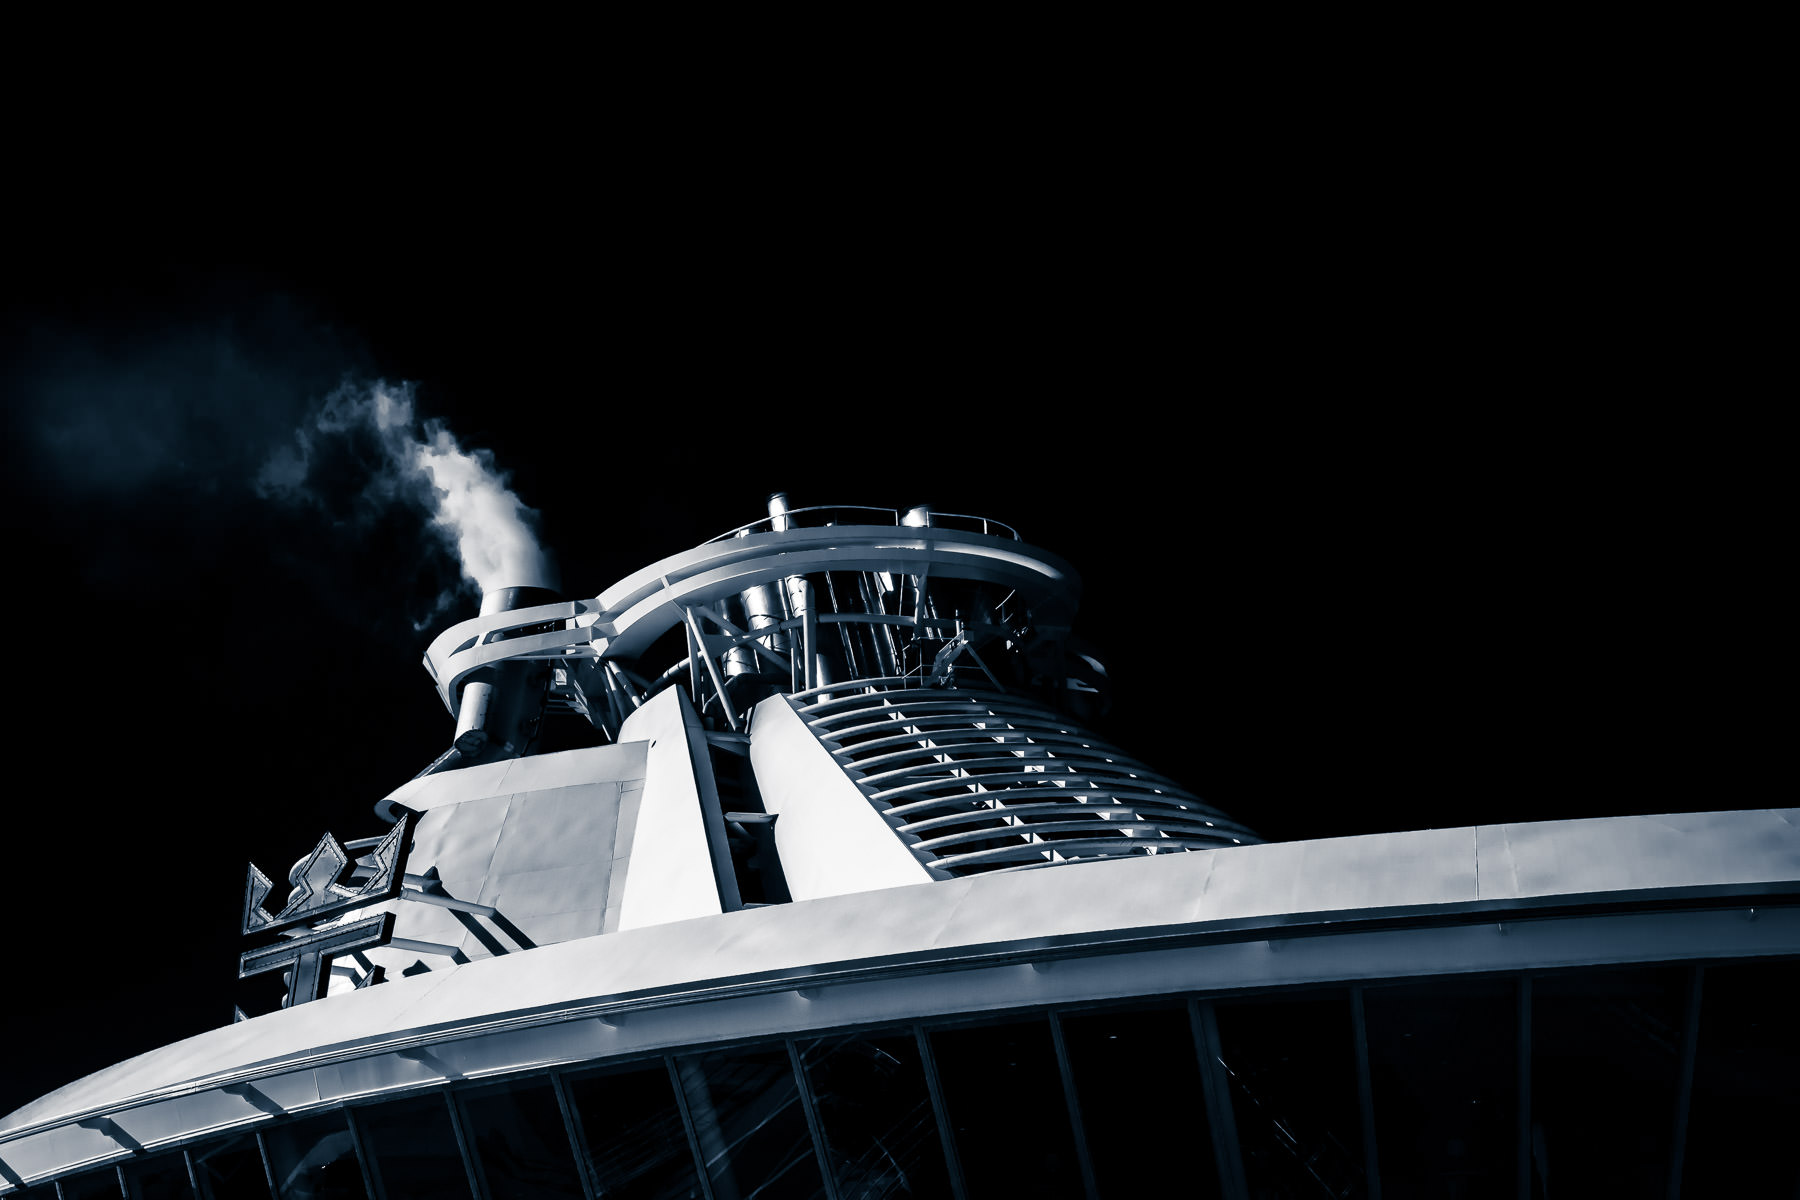 Detail of the Royal Caribbean cruise ship Liberty of the Seas.